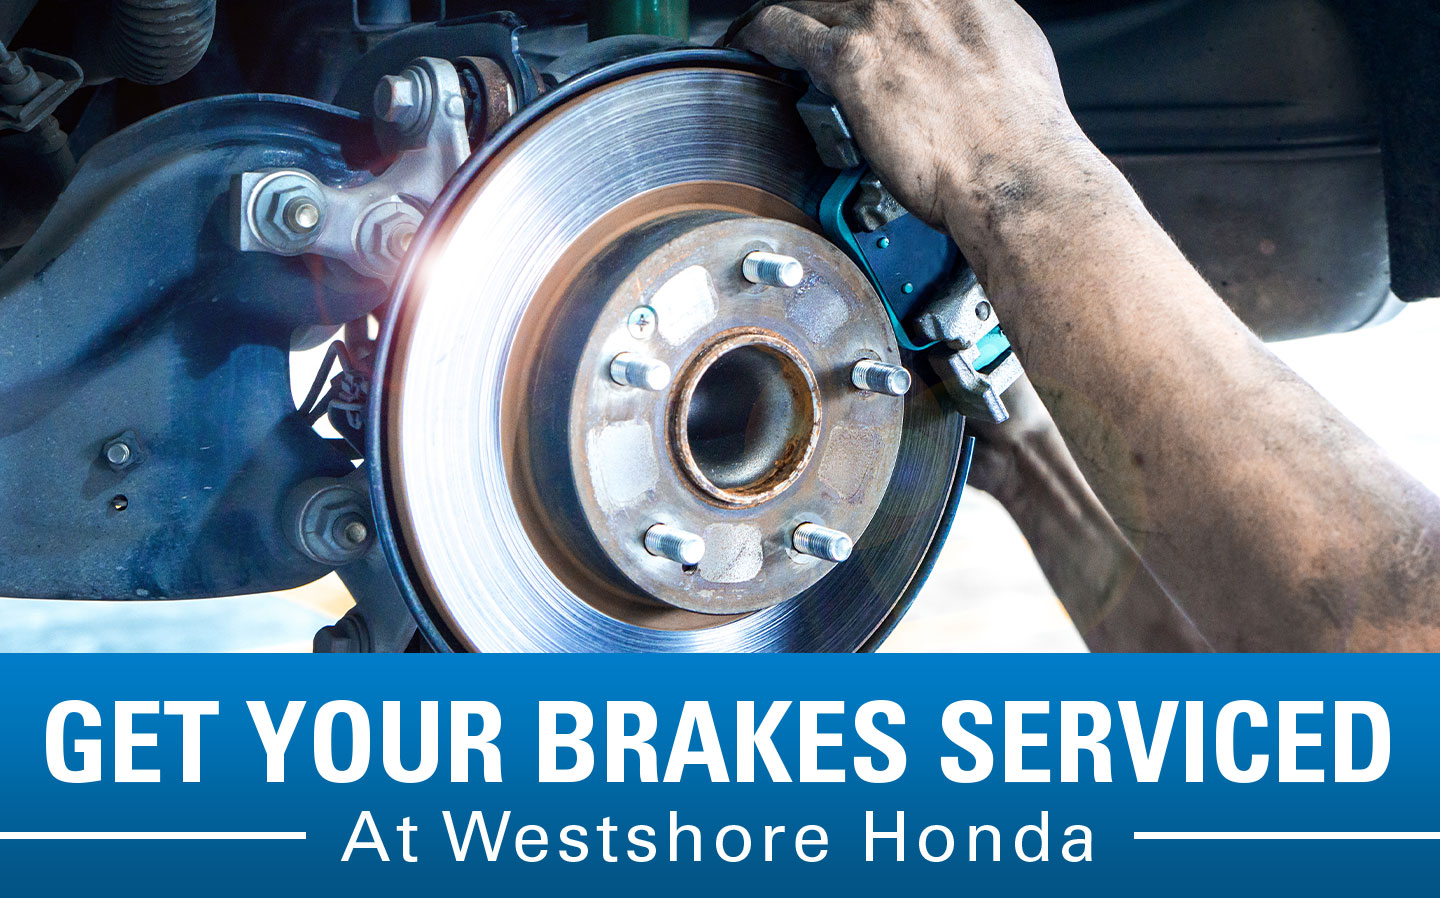 Get your brakes serviced